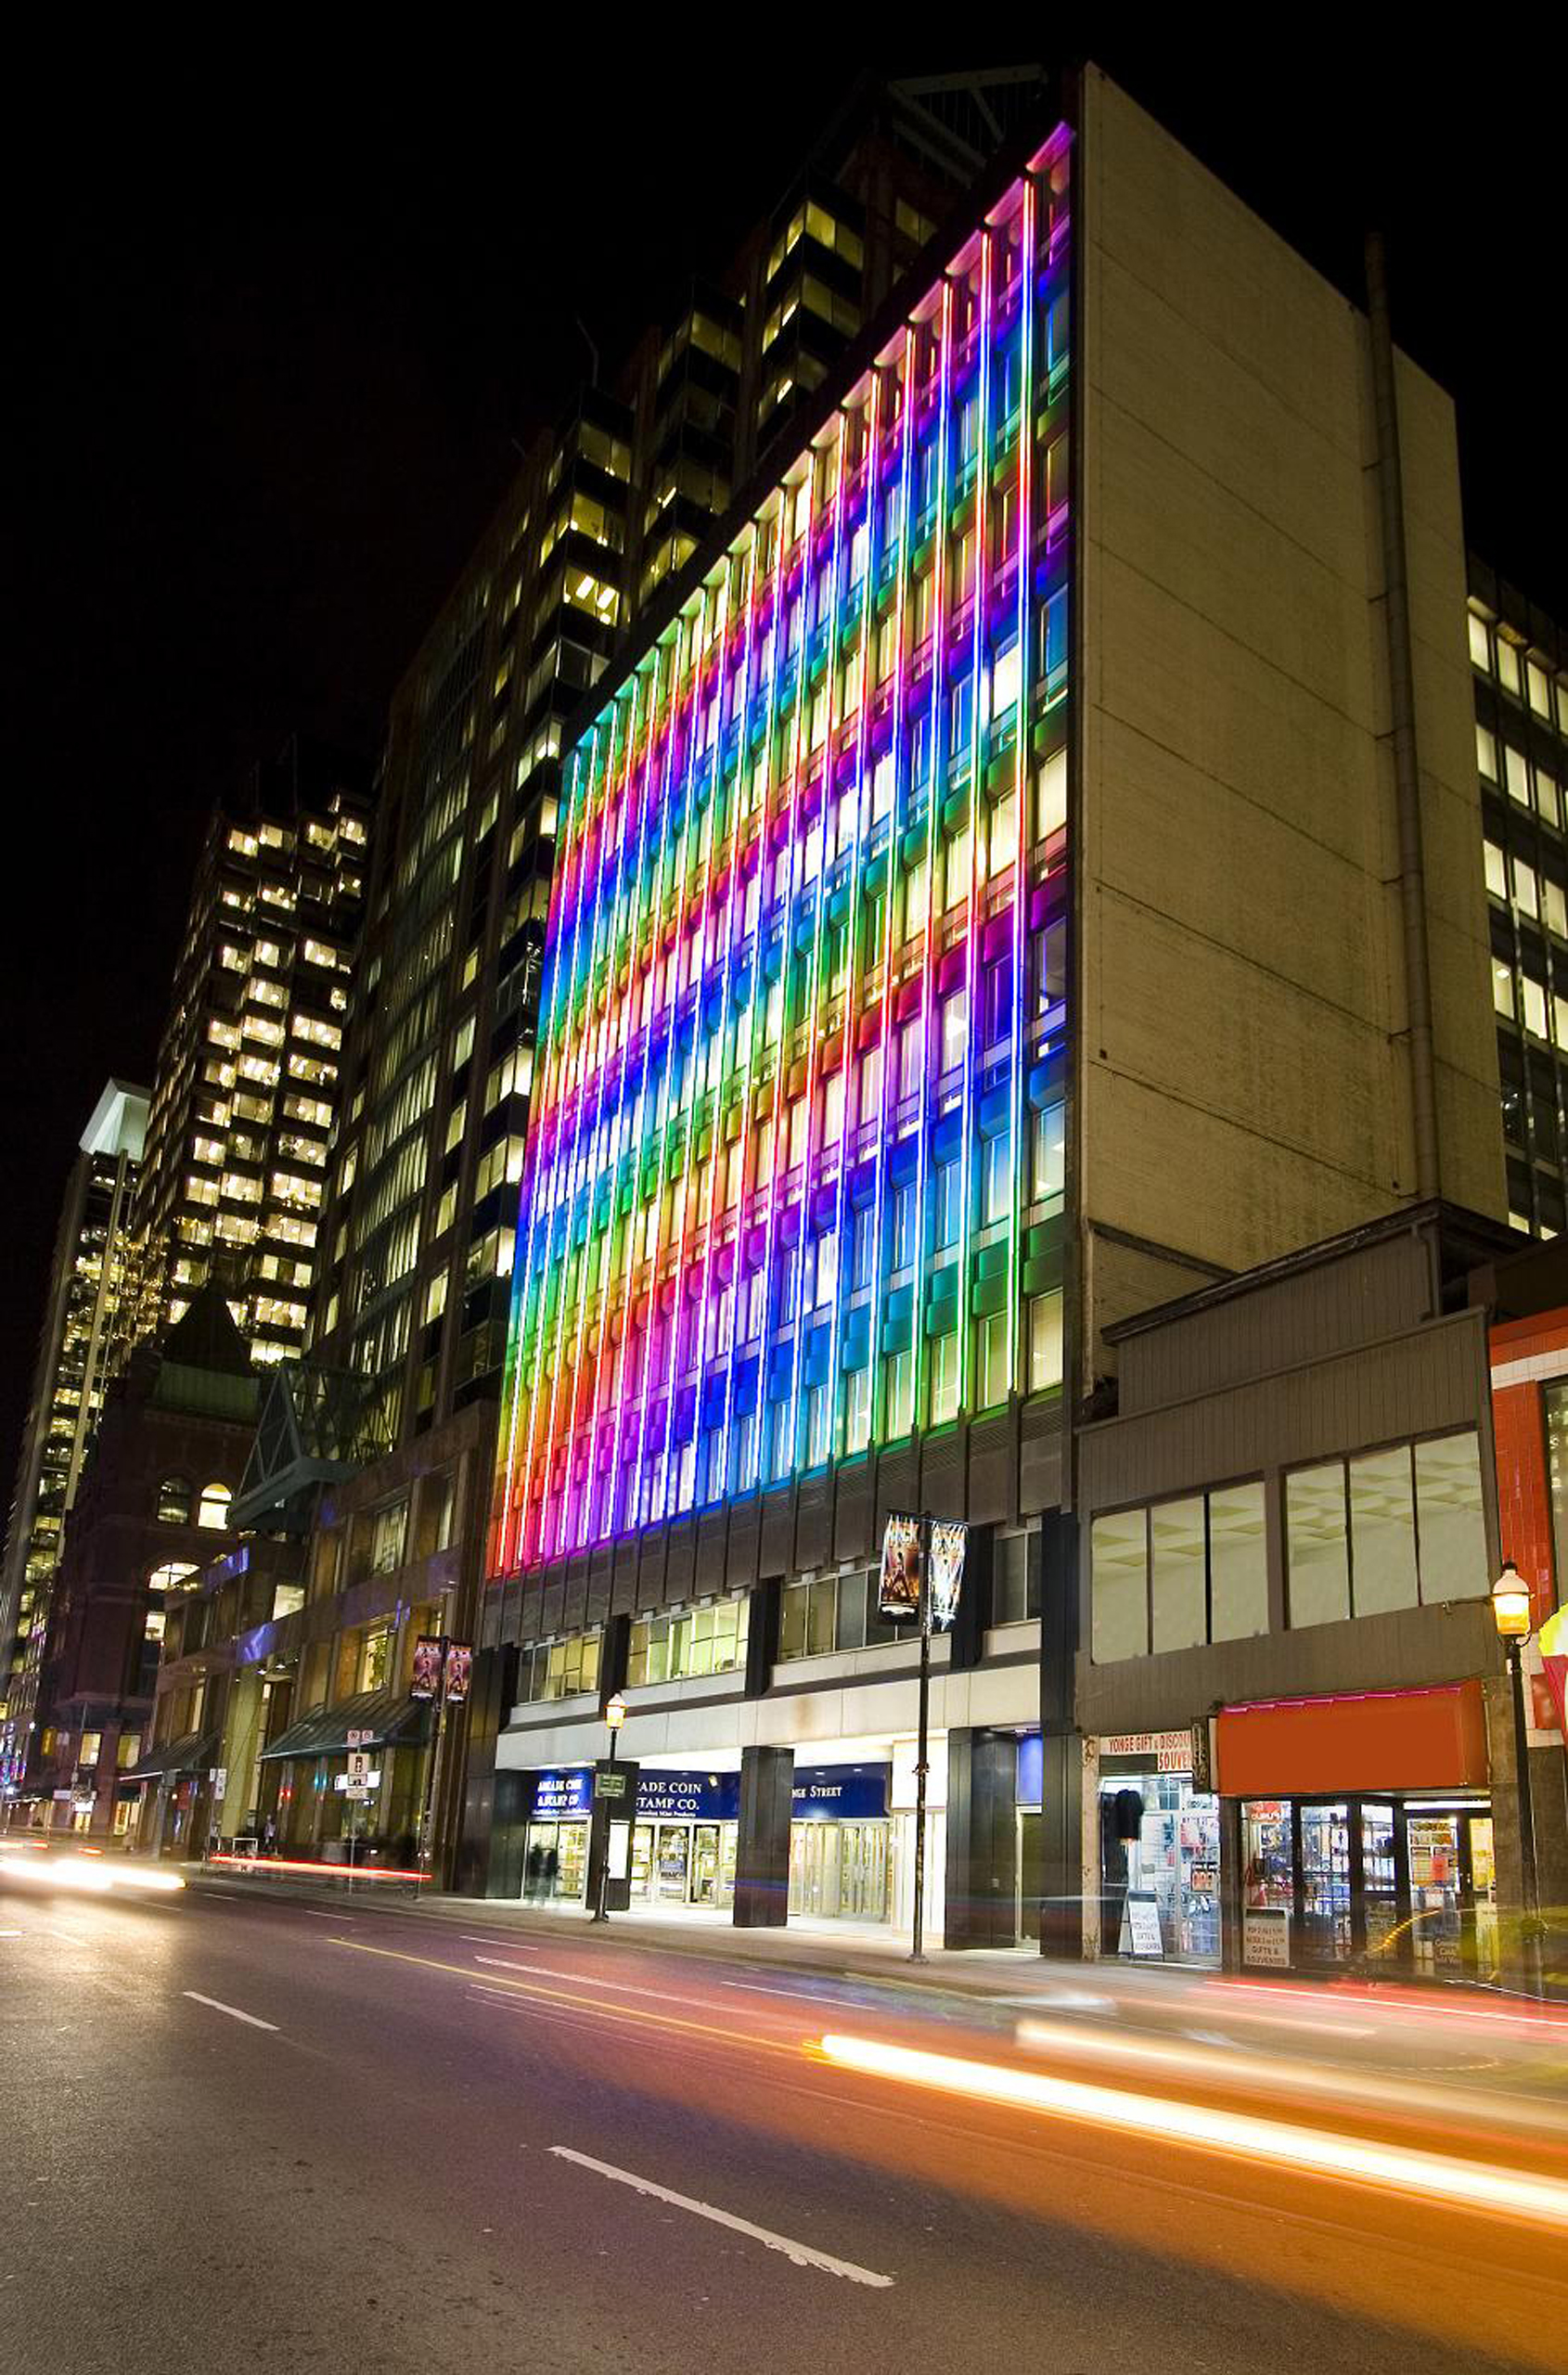 Waterfall Light Show 2011 Colour Kinetics LED display 88x76ft (137 Yonge Street, Toronto)